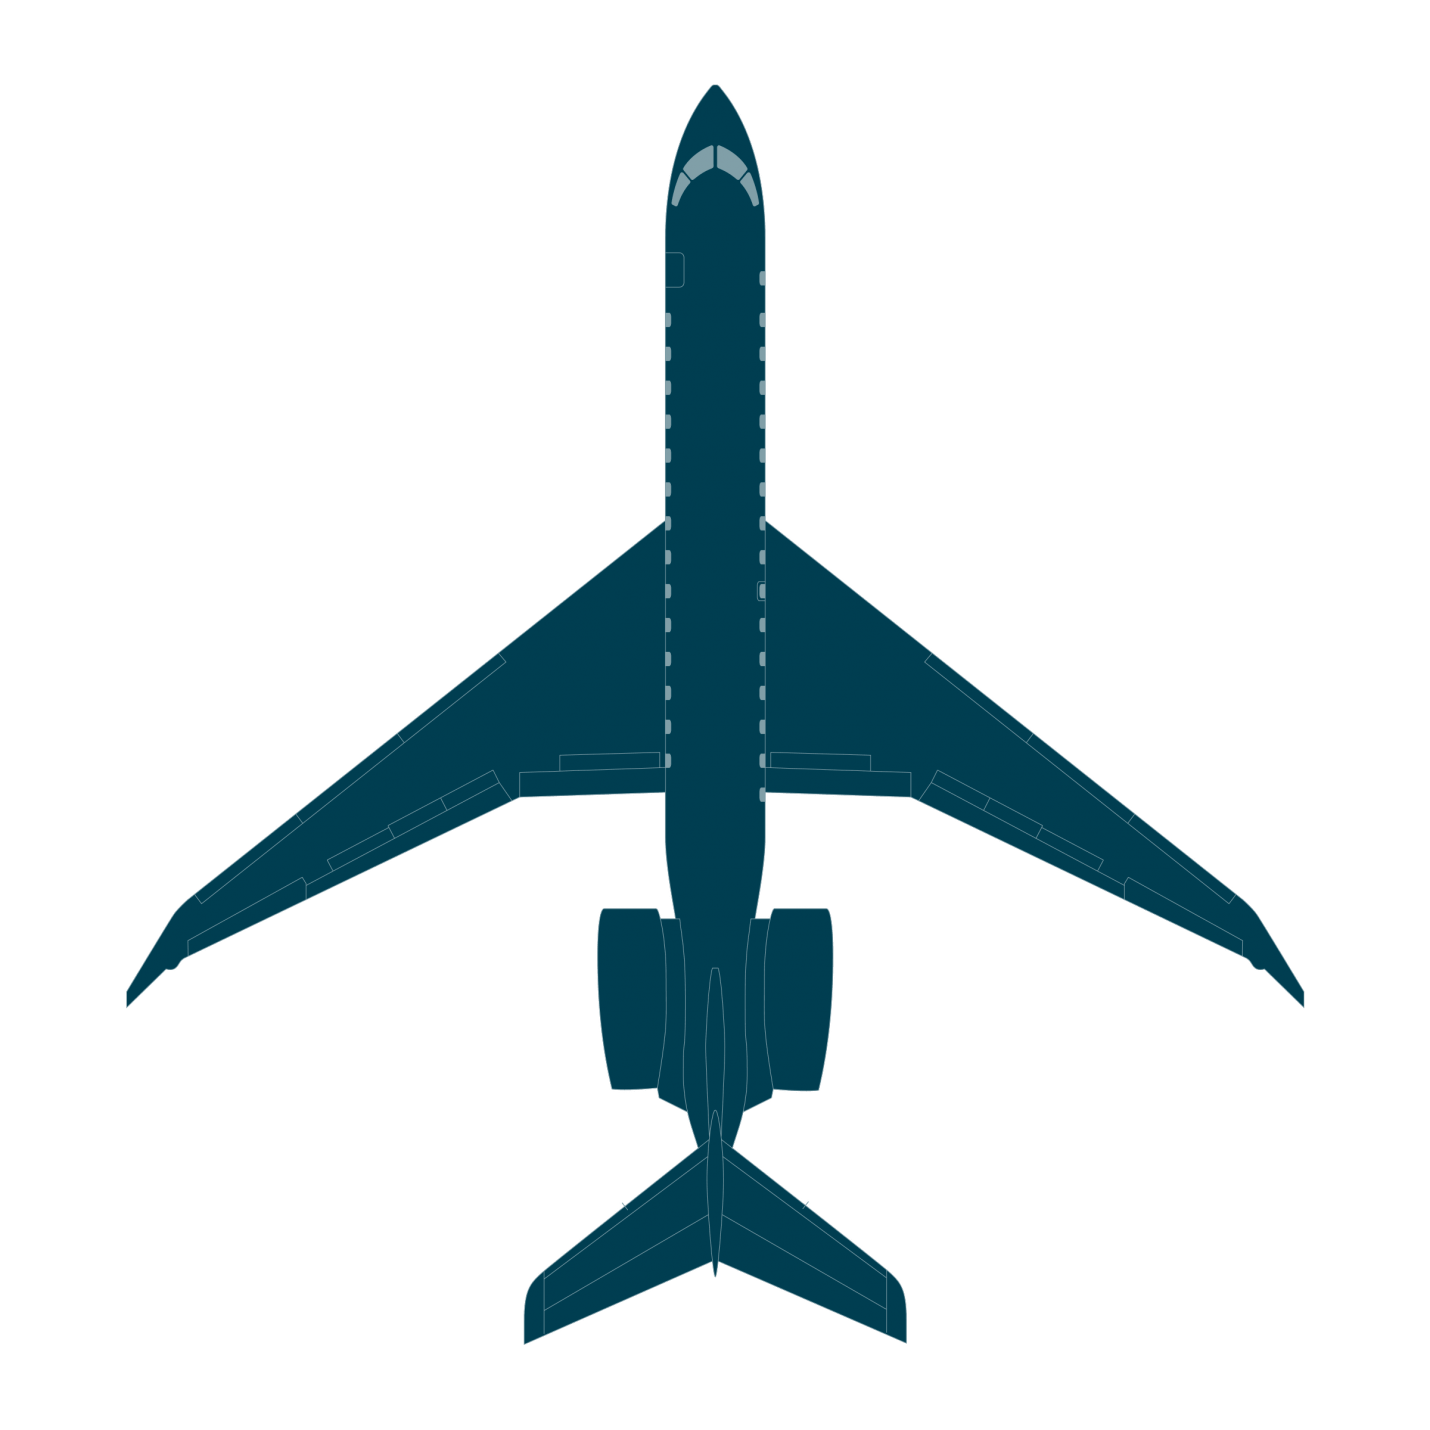 Global 7000 Bombardier Business Aircraft